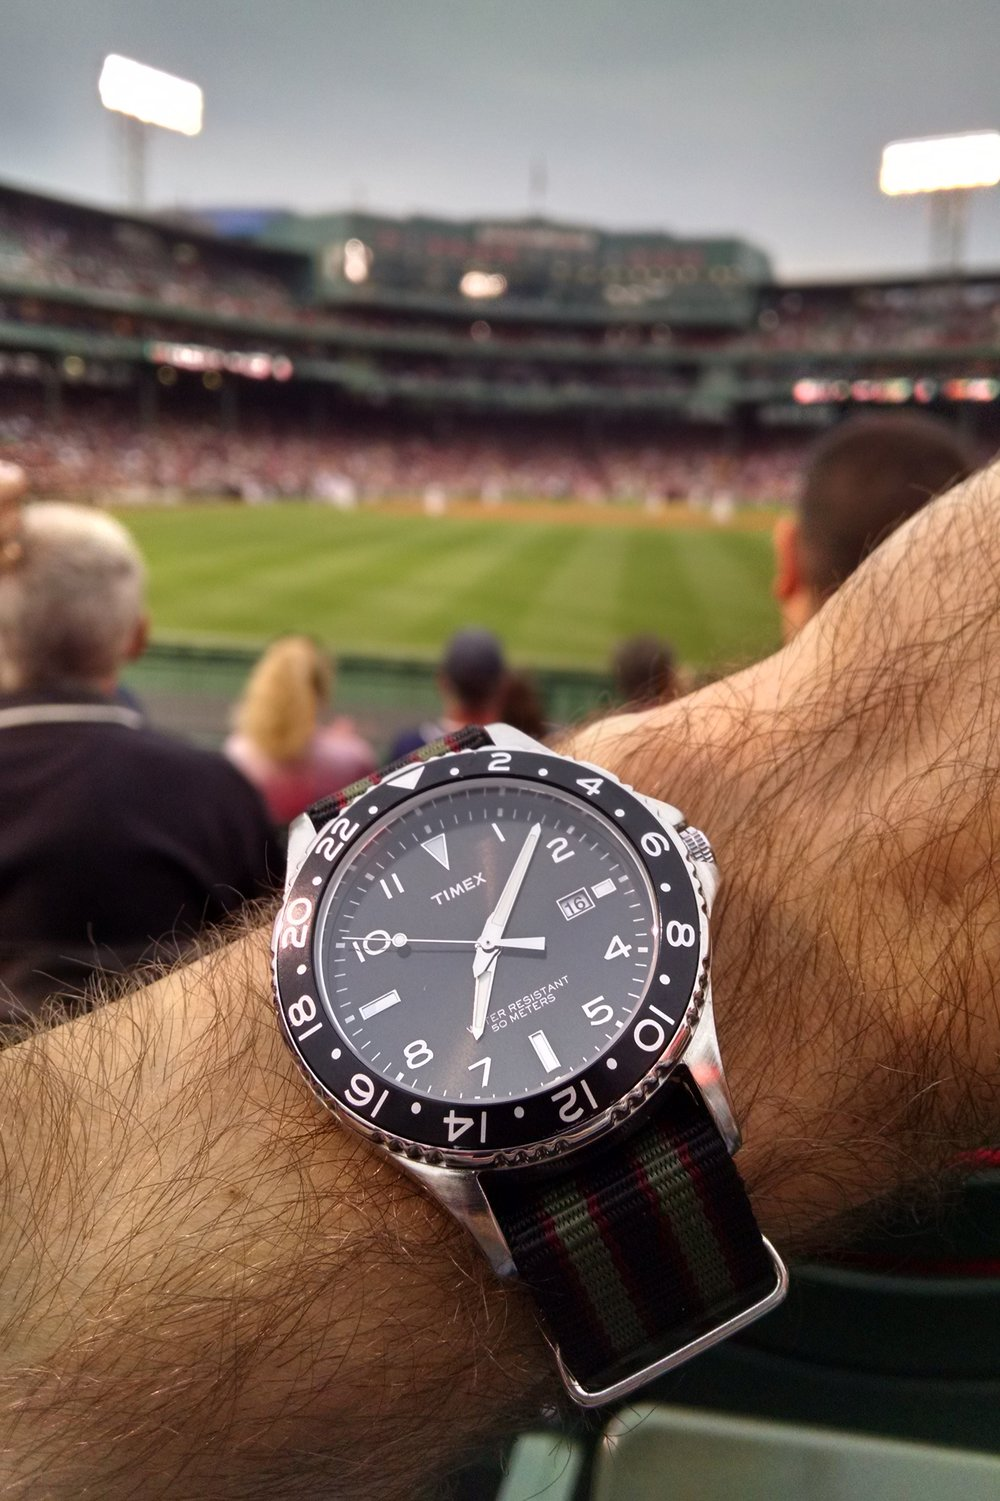 Timex submariner at Fenway Park  Boston, Massachusetts